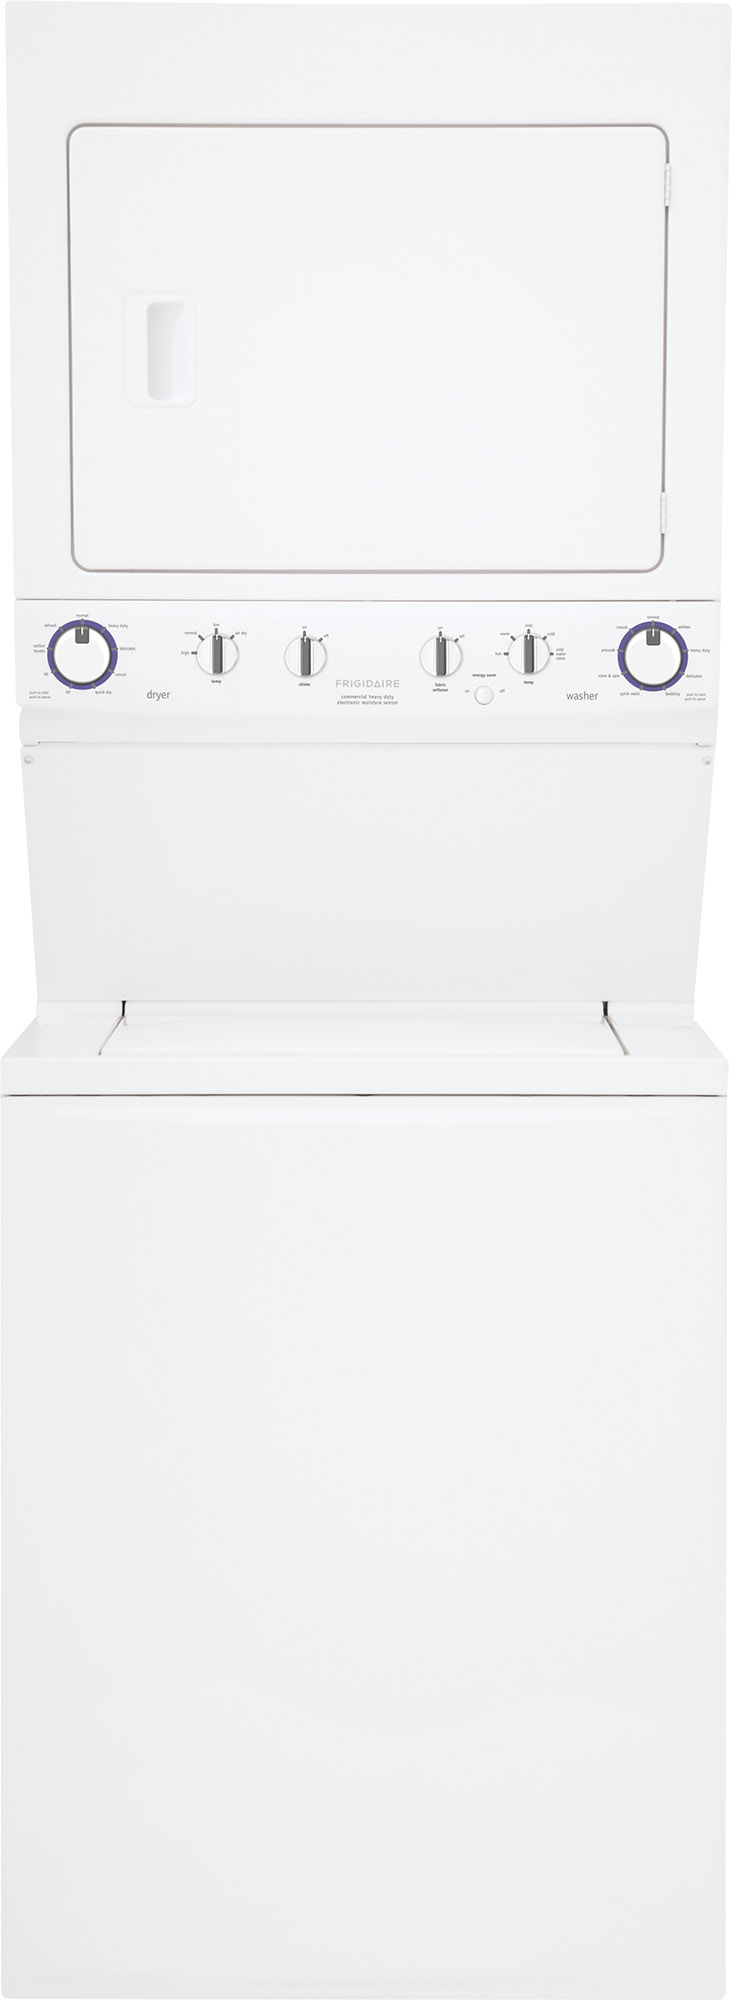 frigidaire washer  dryer combo  model ffle4033qw0 parts  u0026 repair help